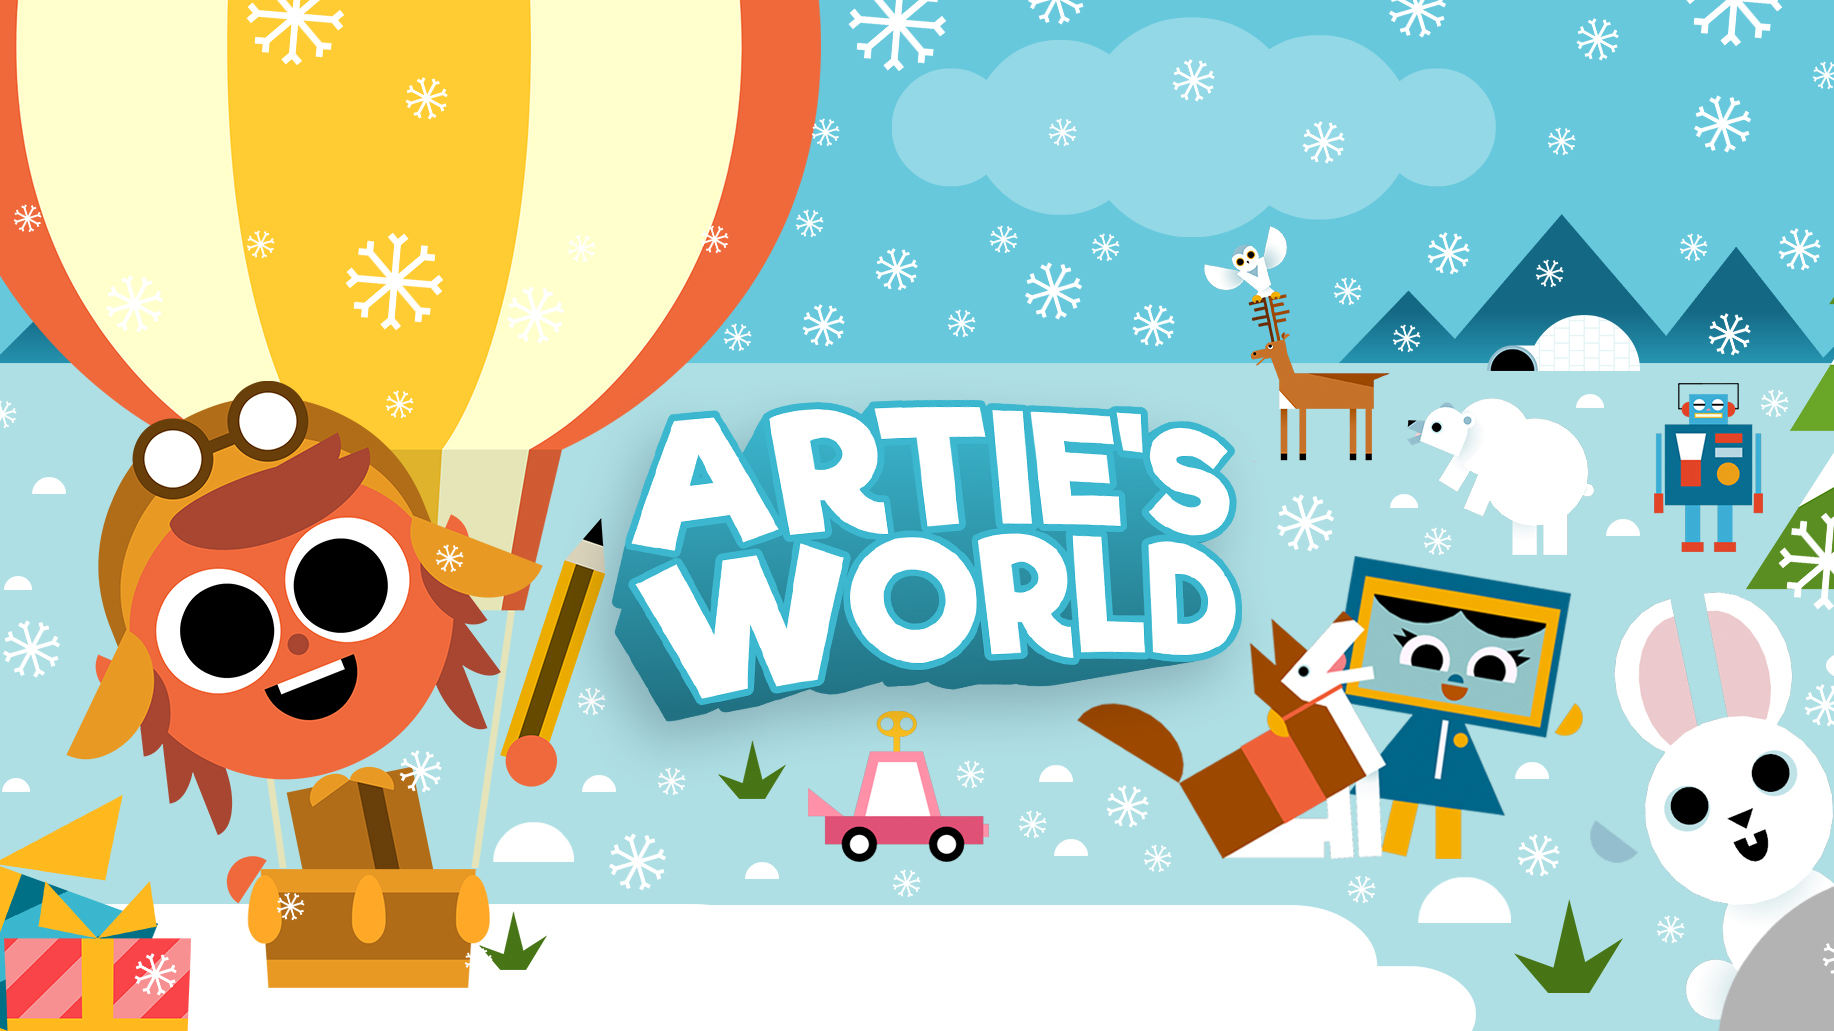 Artie's World